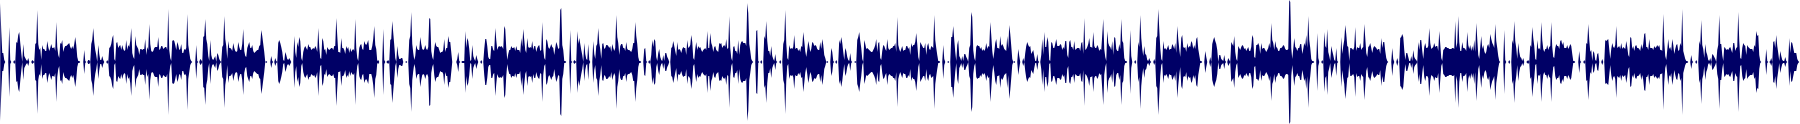 waveform of track #66284